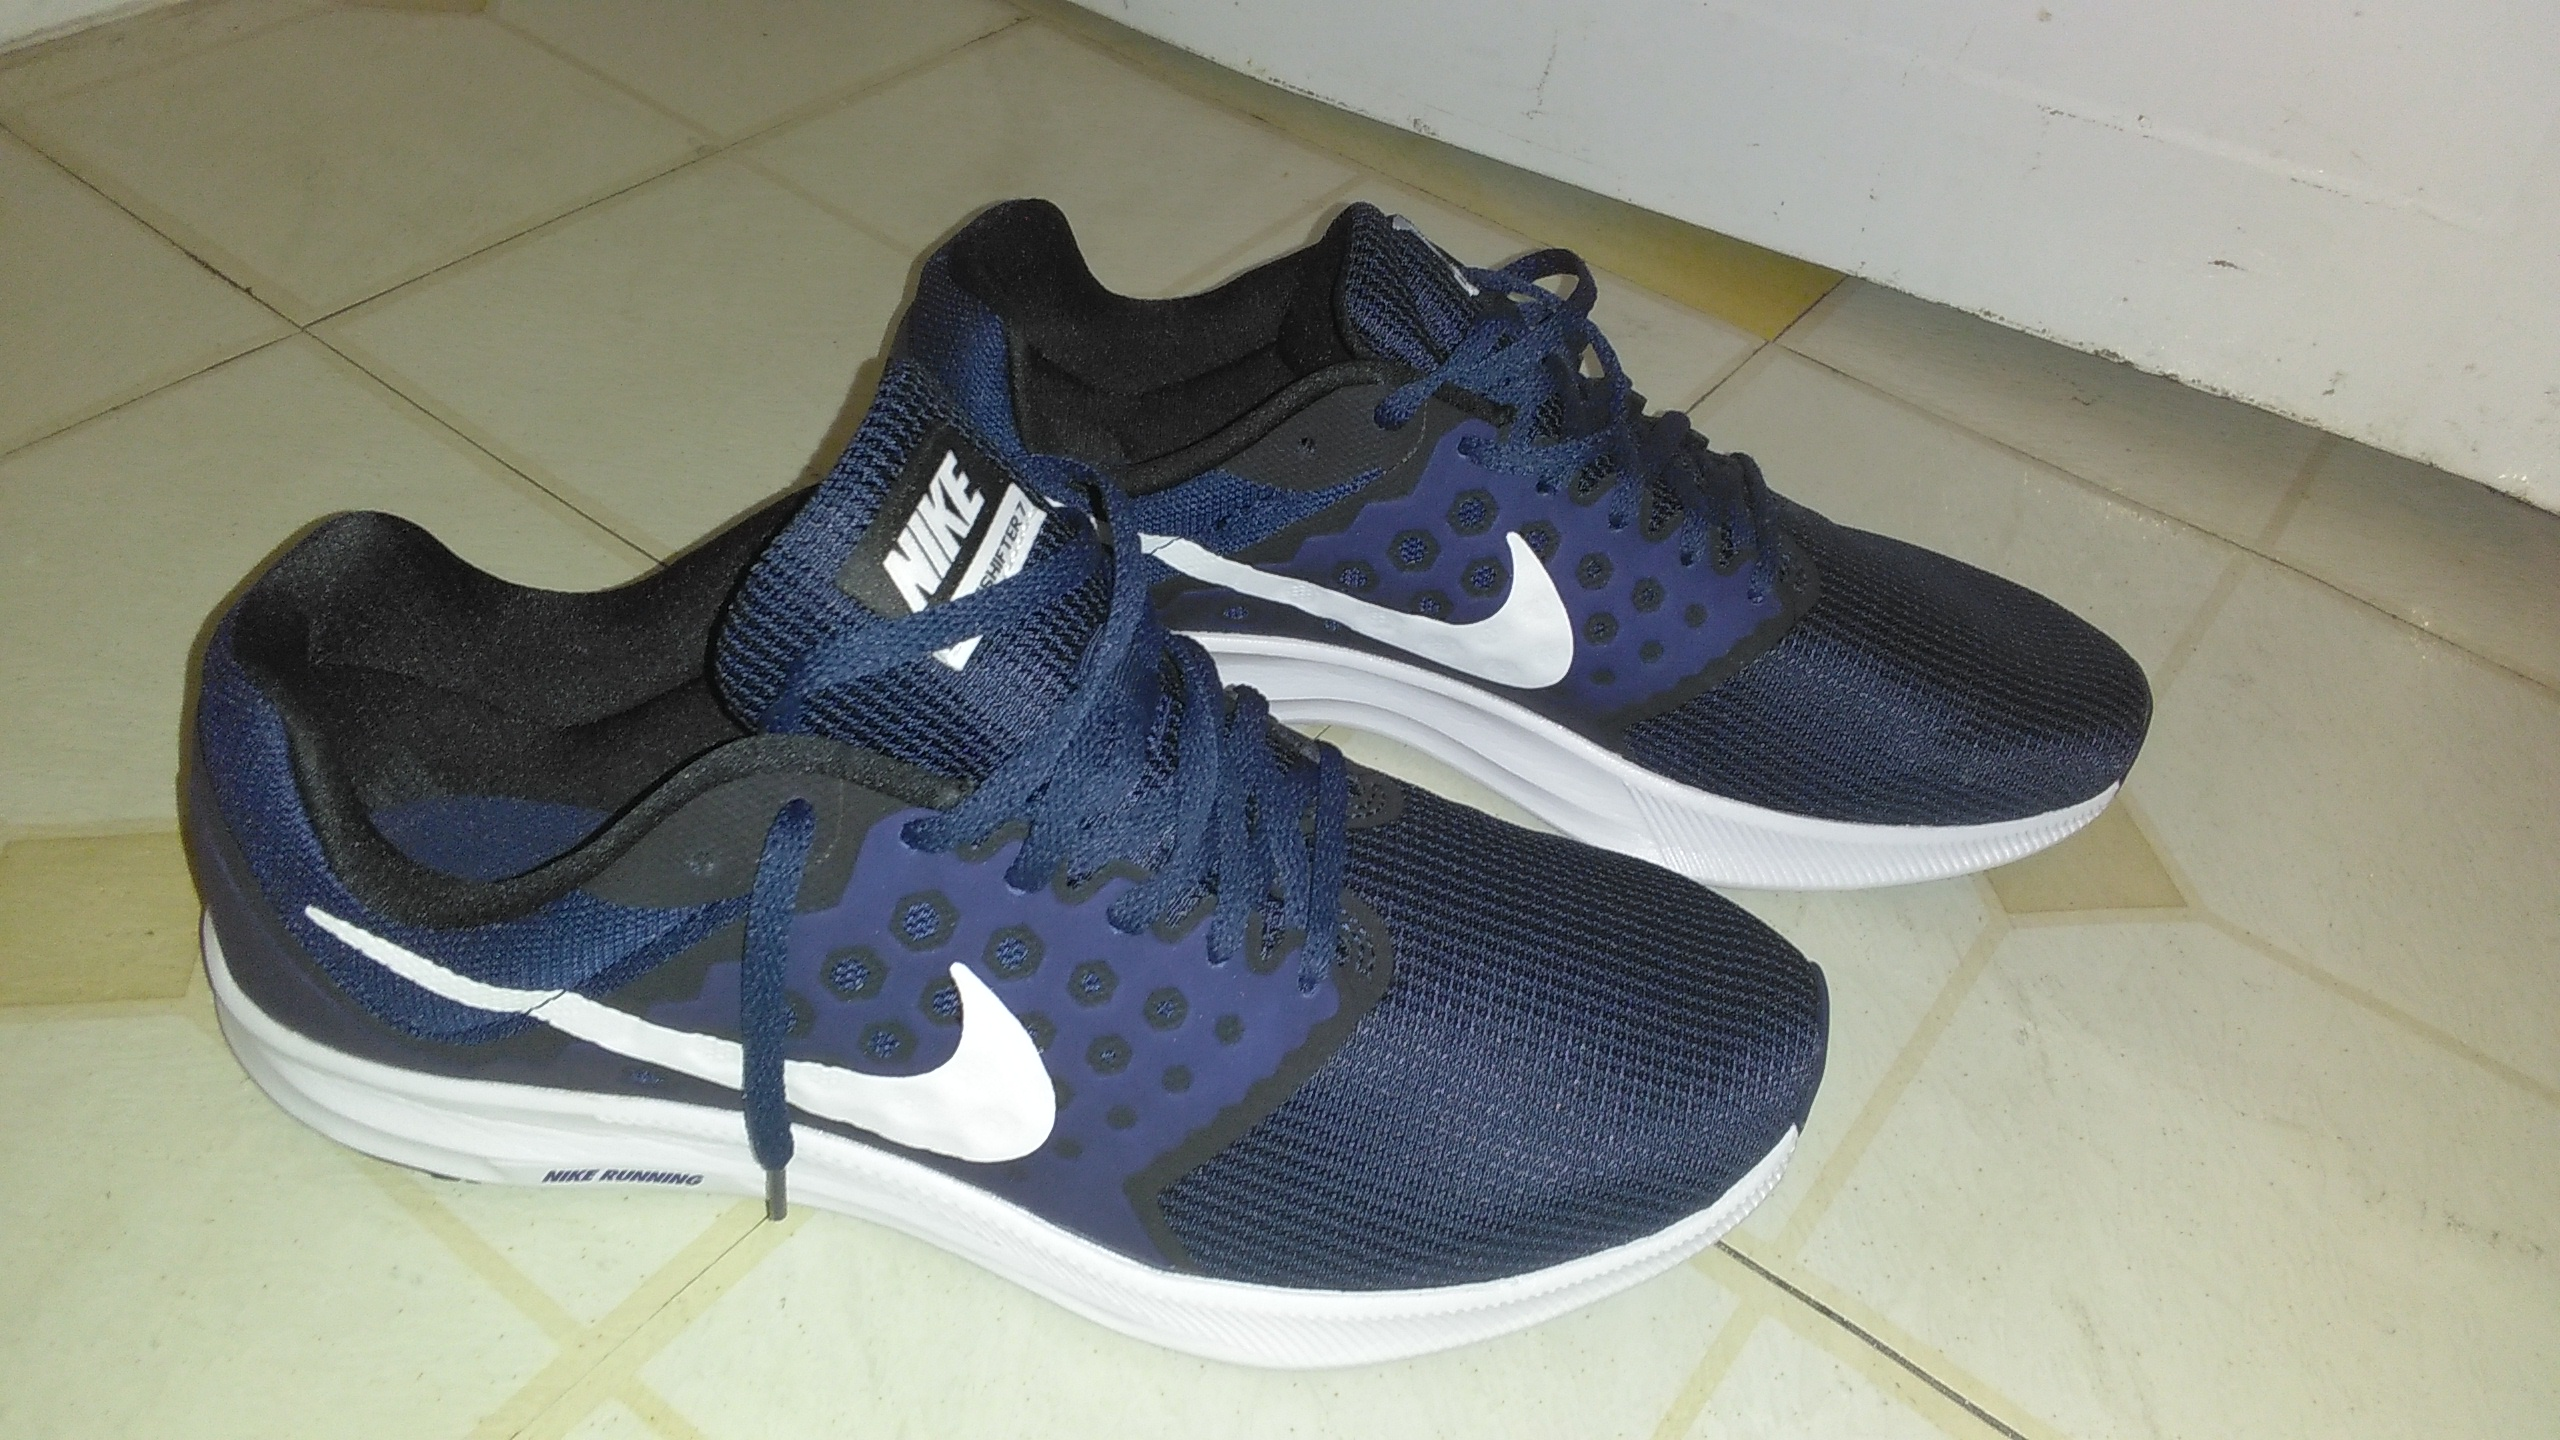 New Nike's size 10.5